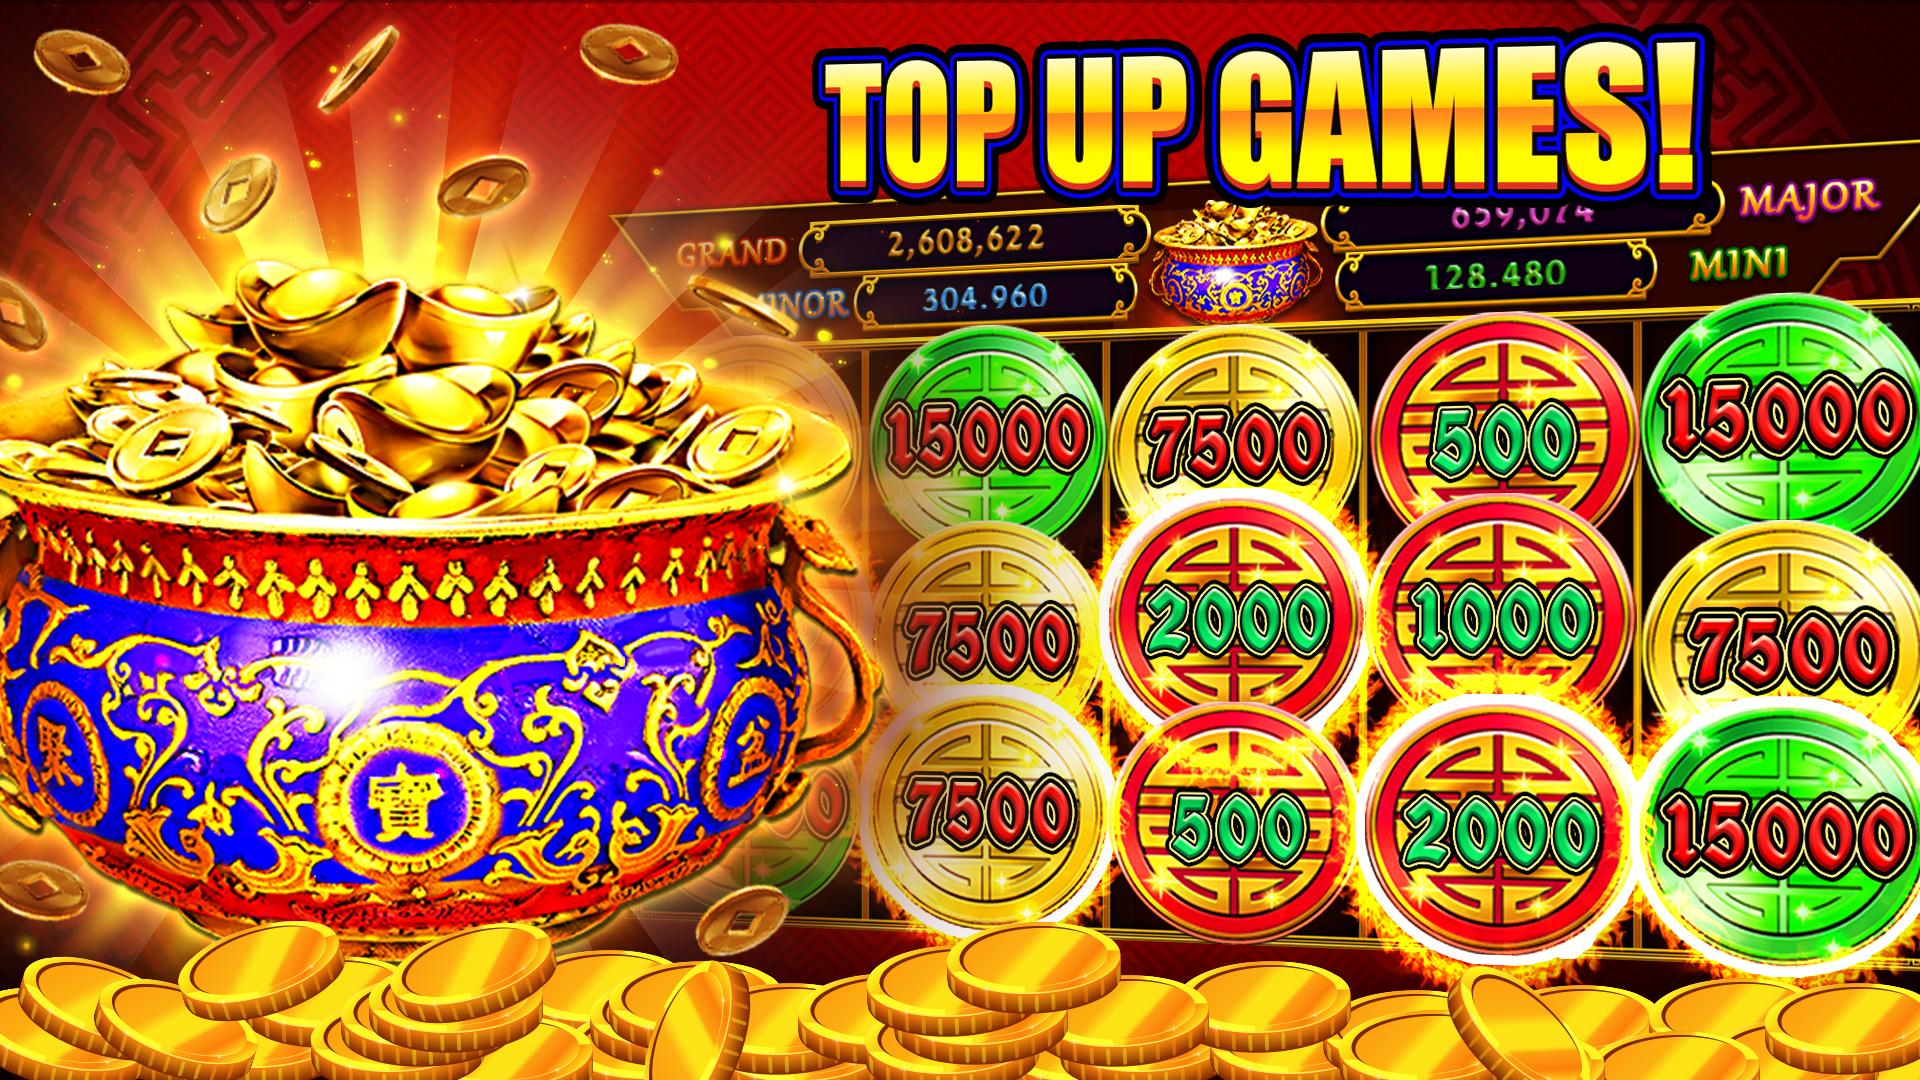 Vegas Casino Slots 2020 - 2,000,000 Free Coins 1.0.34 Screenshot 9